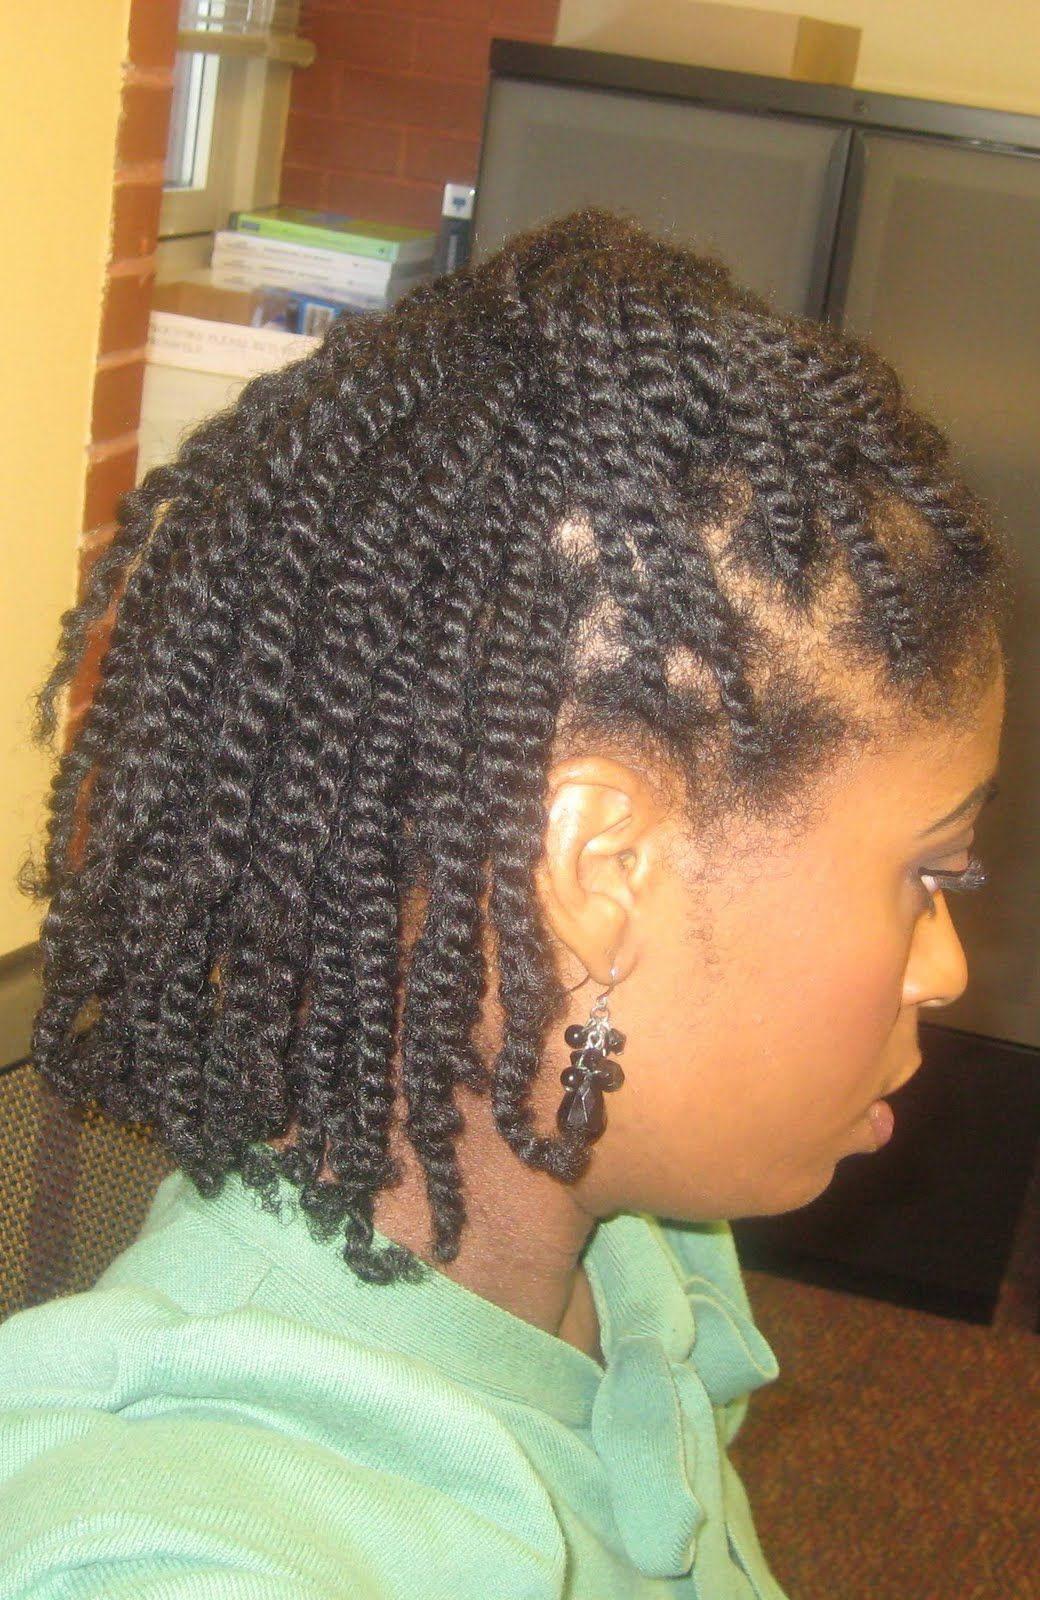 Naturally Elegant Hair Today Two Strand Twists Hair Styles Two Strand Twist Hairstyles Twist Hairstyles